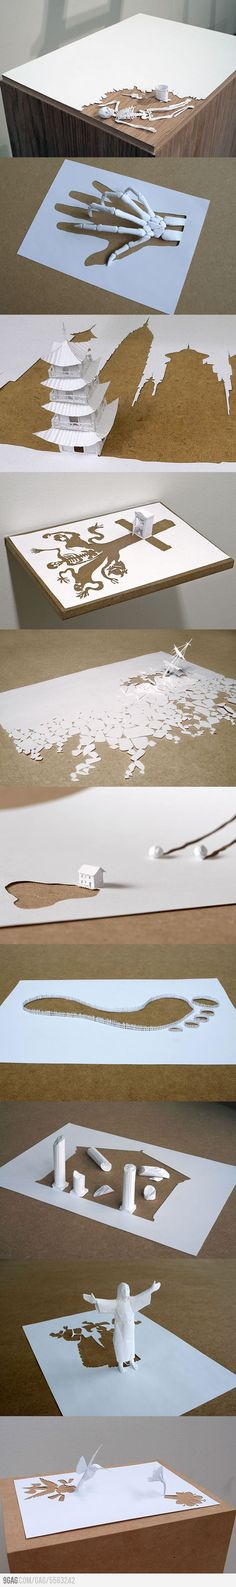 Paper art by Peter Callesen